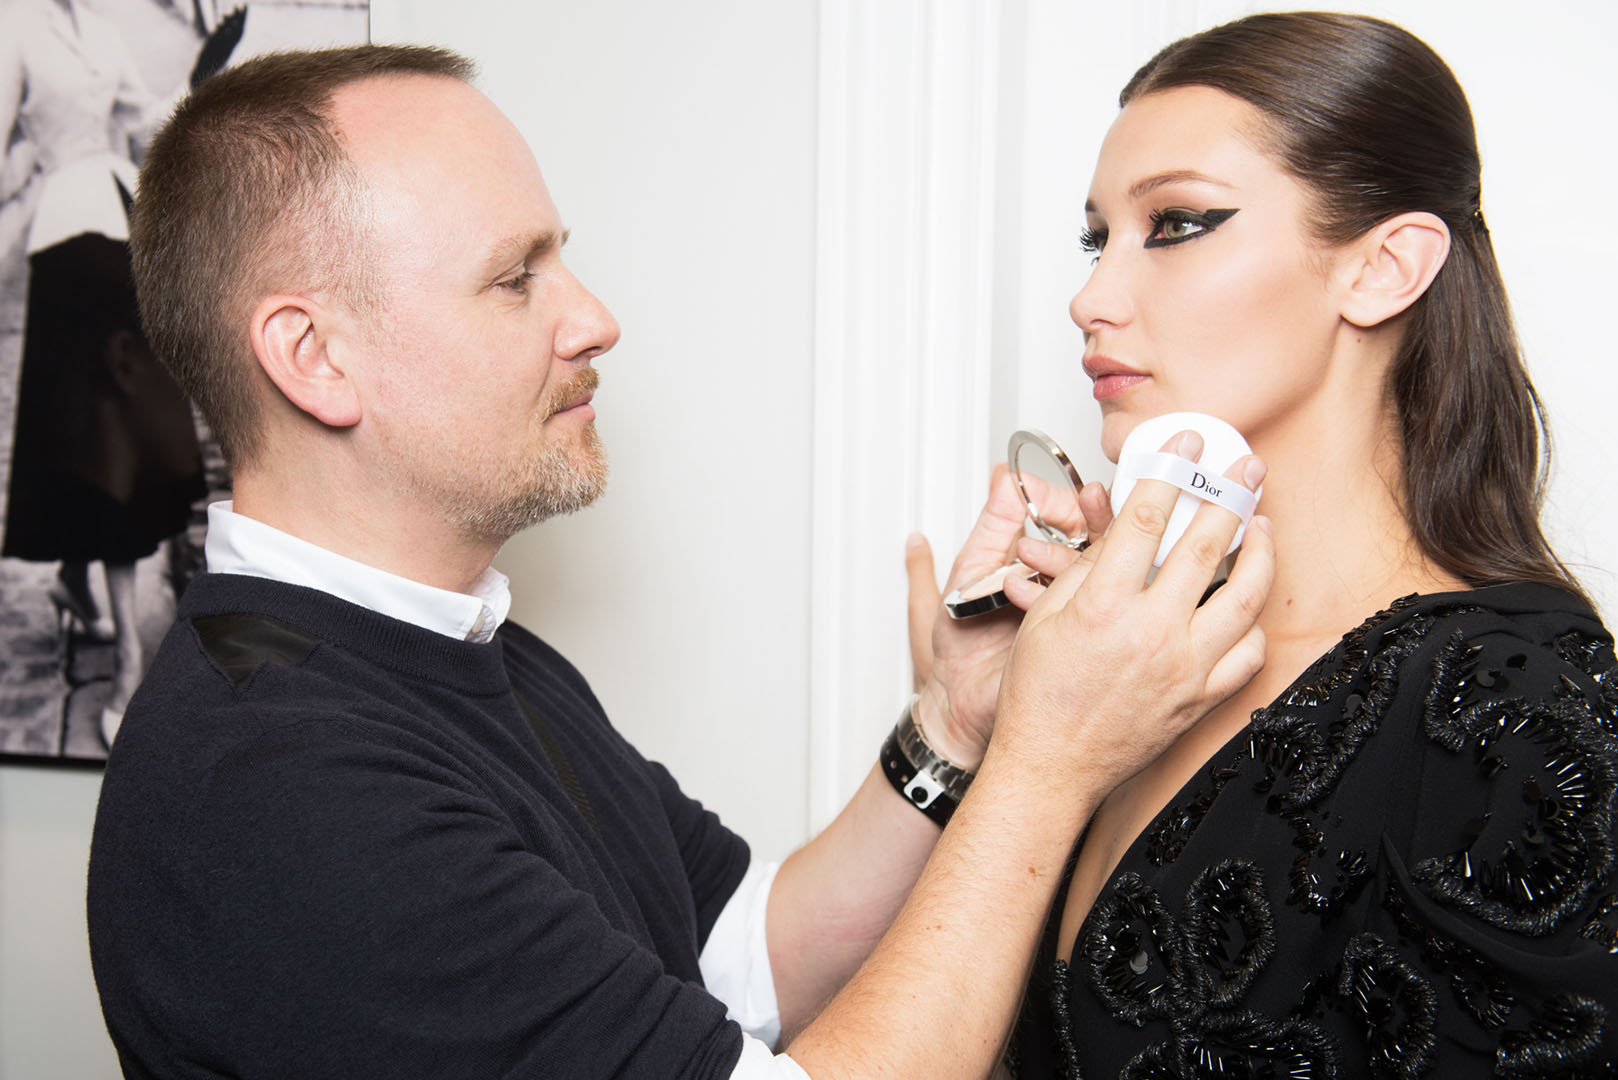 Dior Make-up created by Peter Philips